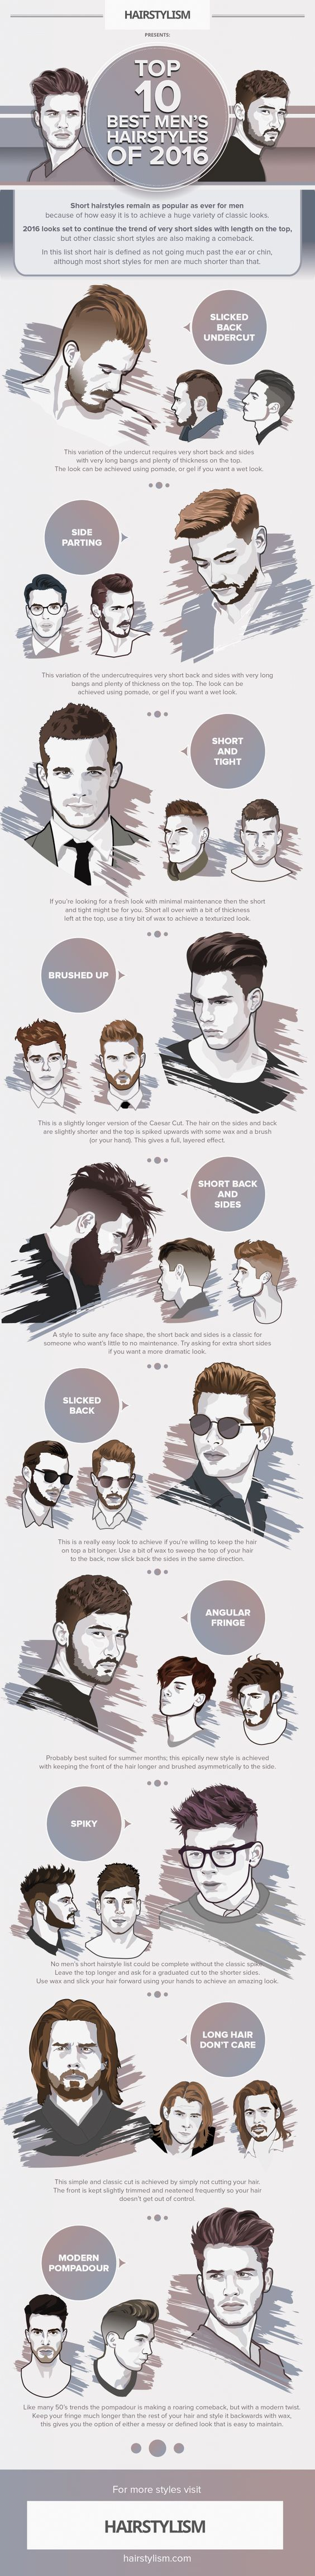 Men's haircut style pictures  work out outfits thatull make you want to get into shape